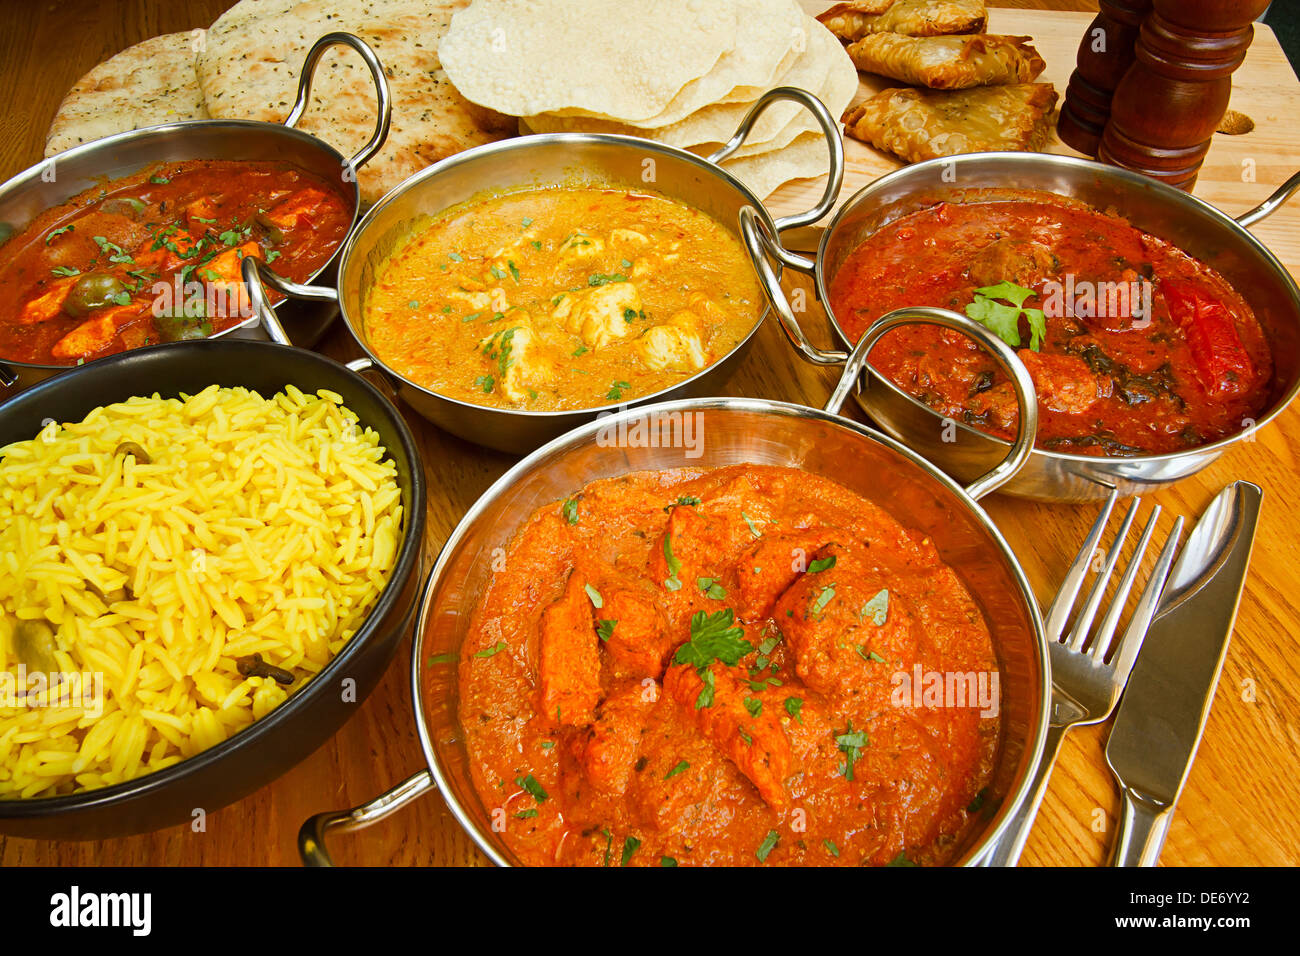 Varied selection of indian cuisine on table including chicken varied selection of indian cuisine on table including chicken tikka beef rogan josh chicken jalfrezi and chicken korma forumfinder Gallery